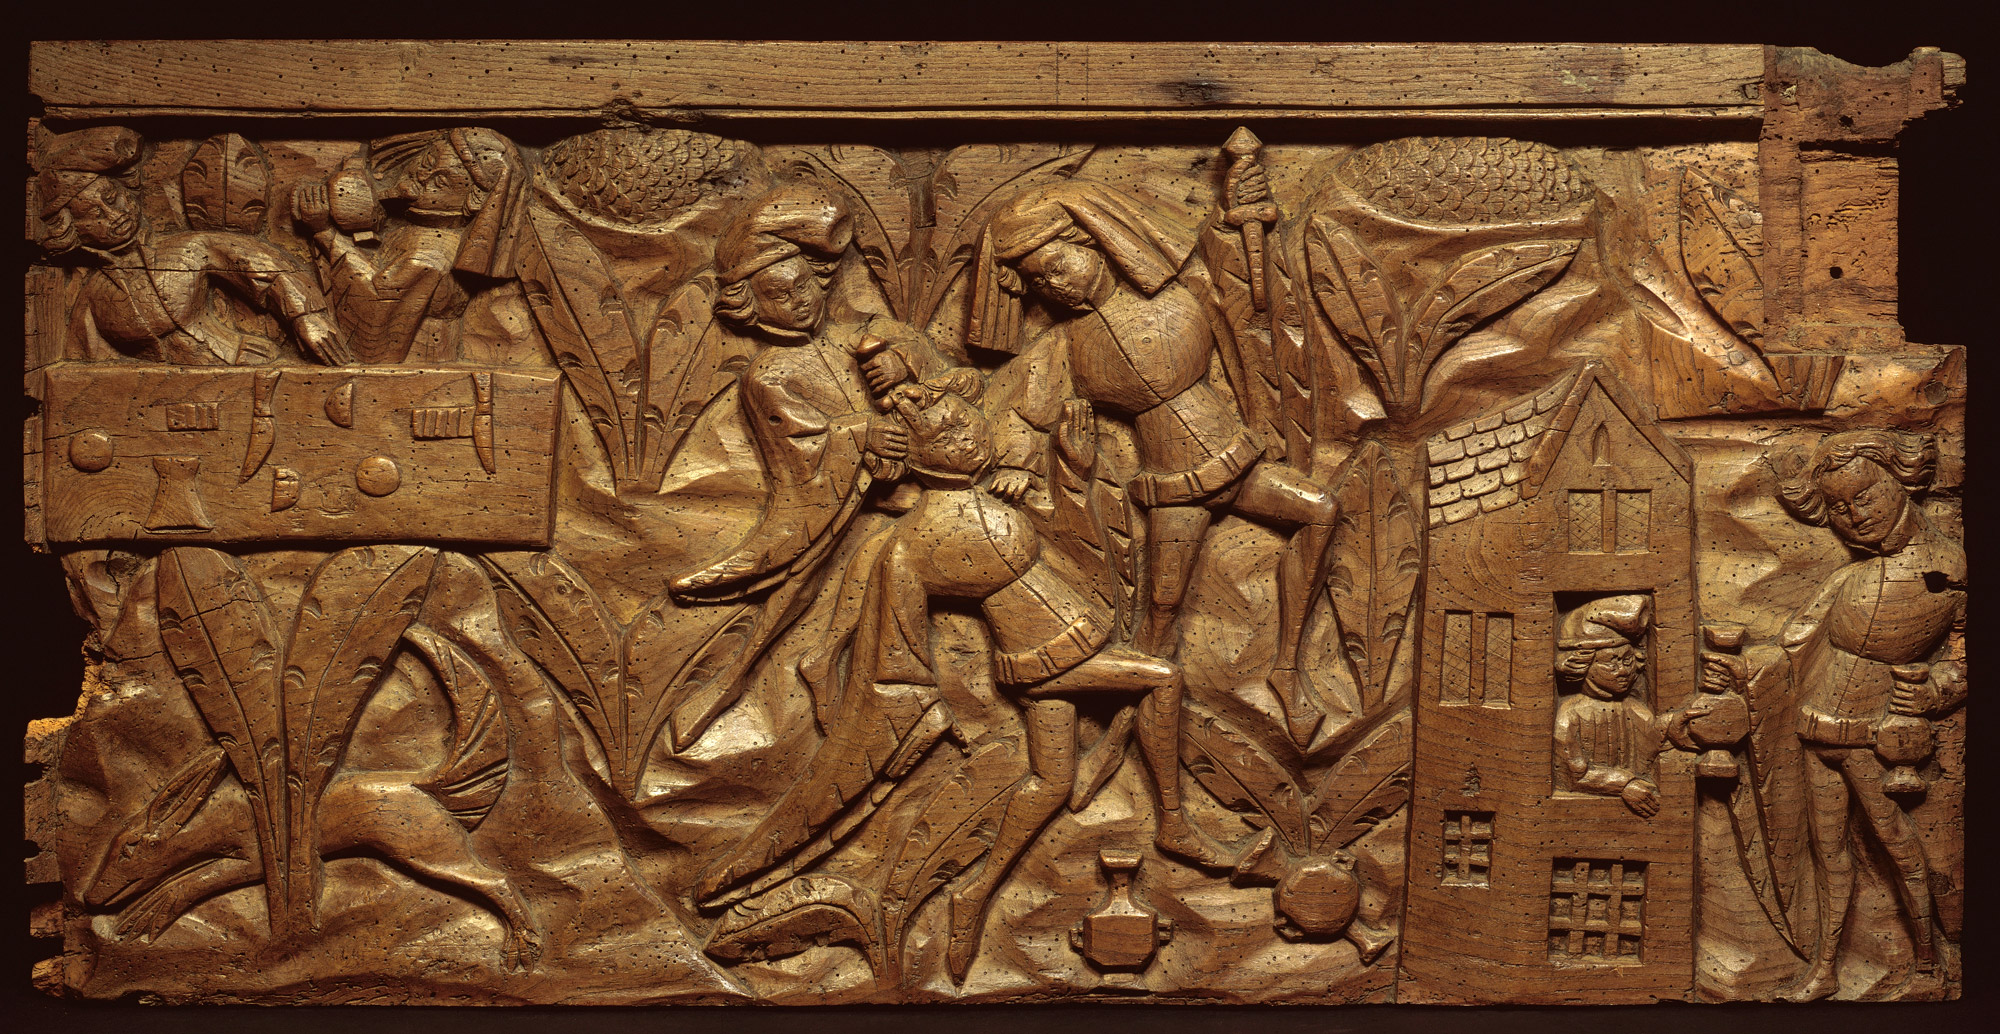 Panel depicting a scene from the Pardoner's Tale